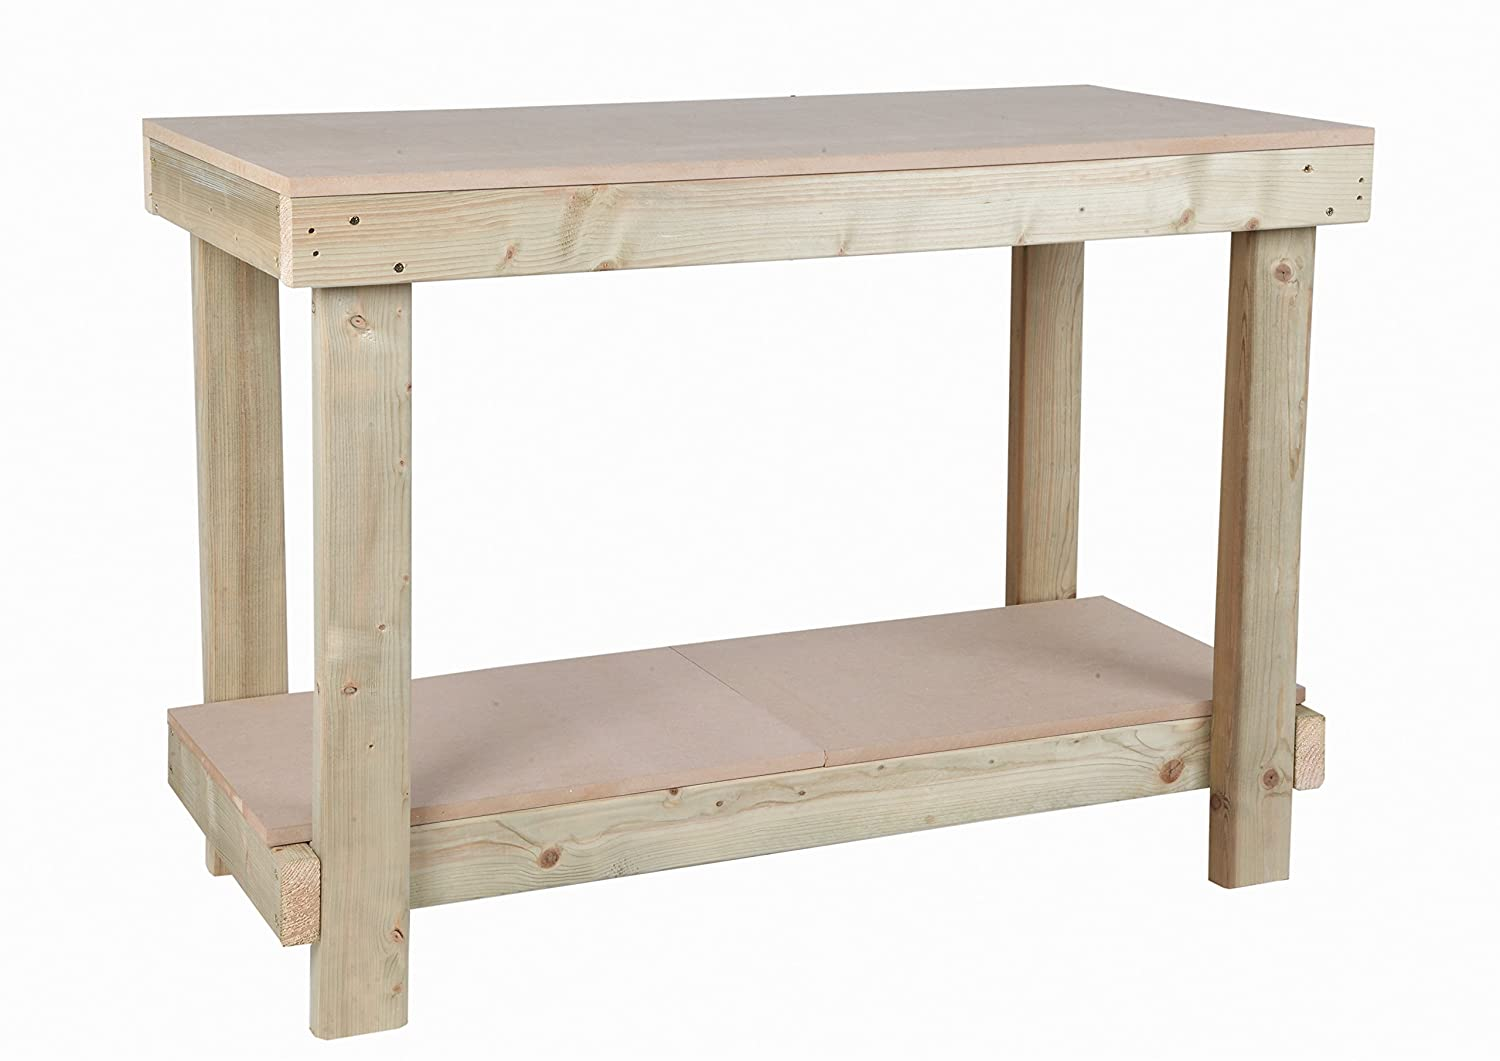 4ft 1200mm MDF TOP WORK BENCH HEAVY DUTY STRONG AND STURDY MC Timber Products